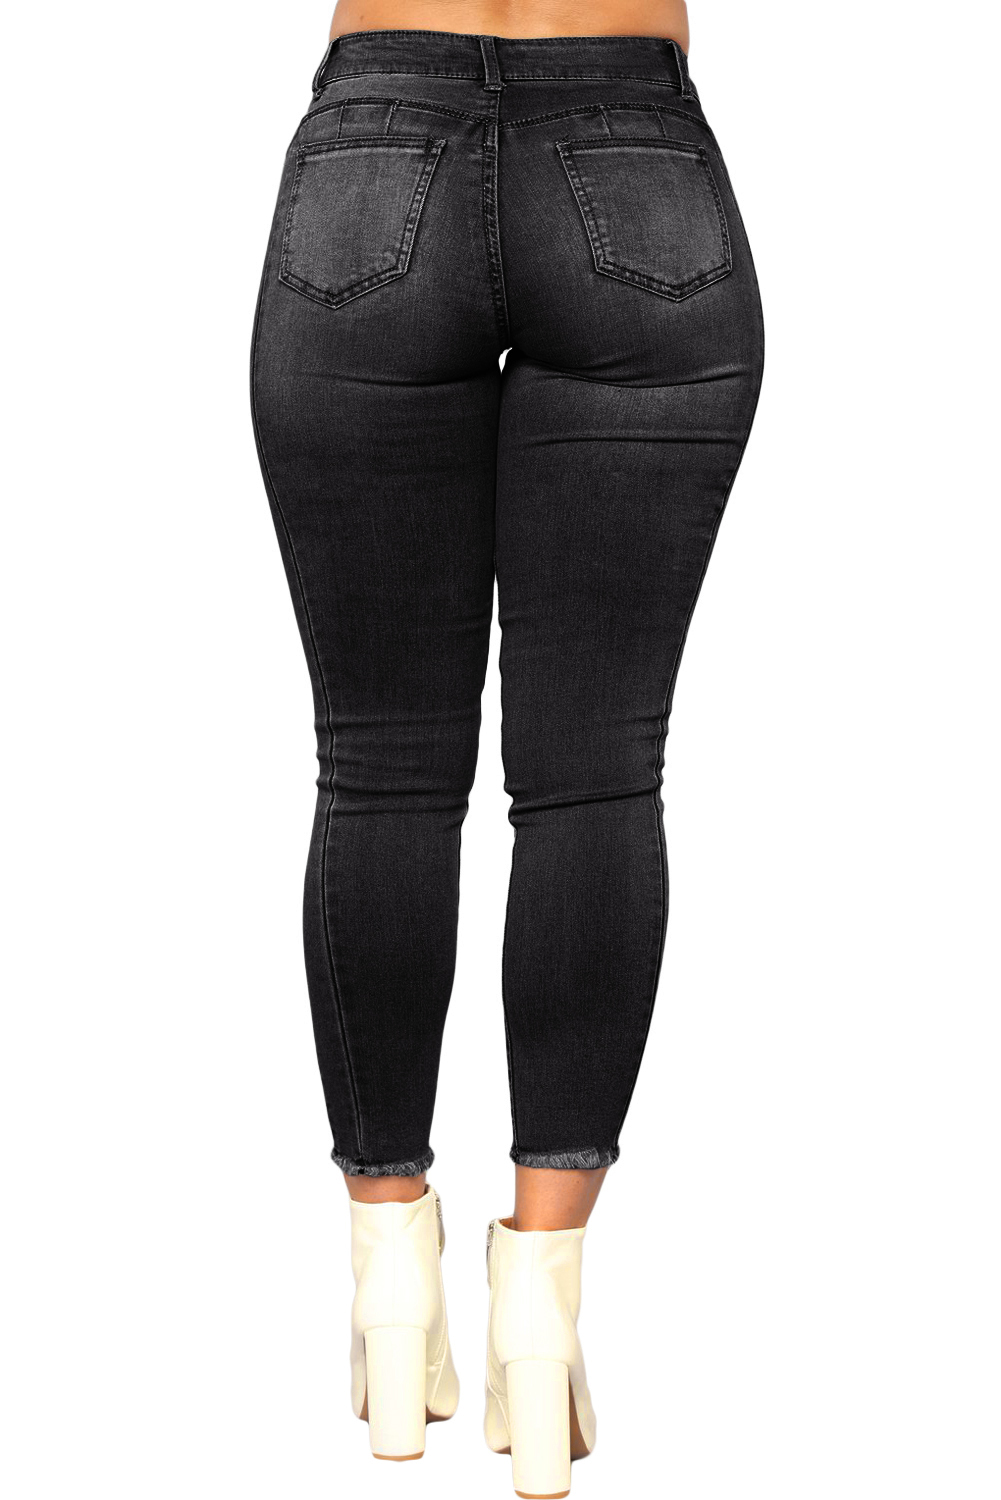 Blackwash triple seam cropped jeans